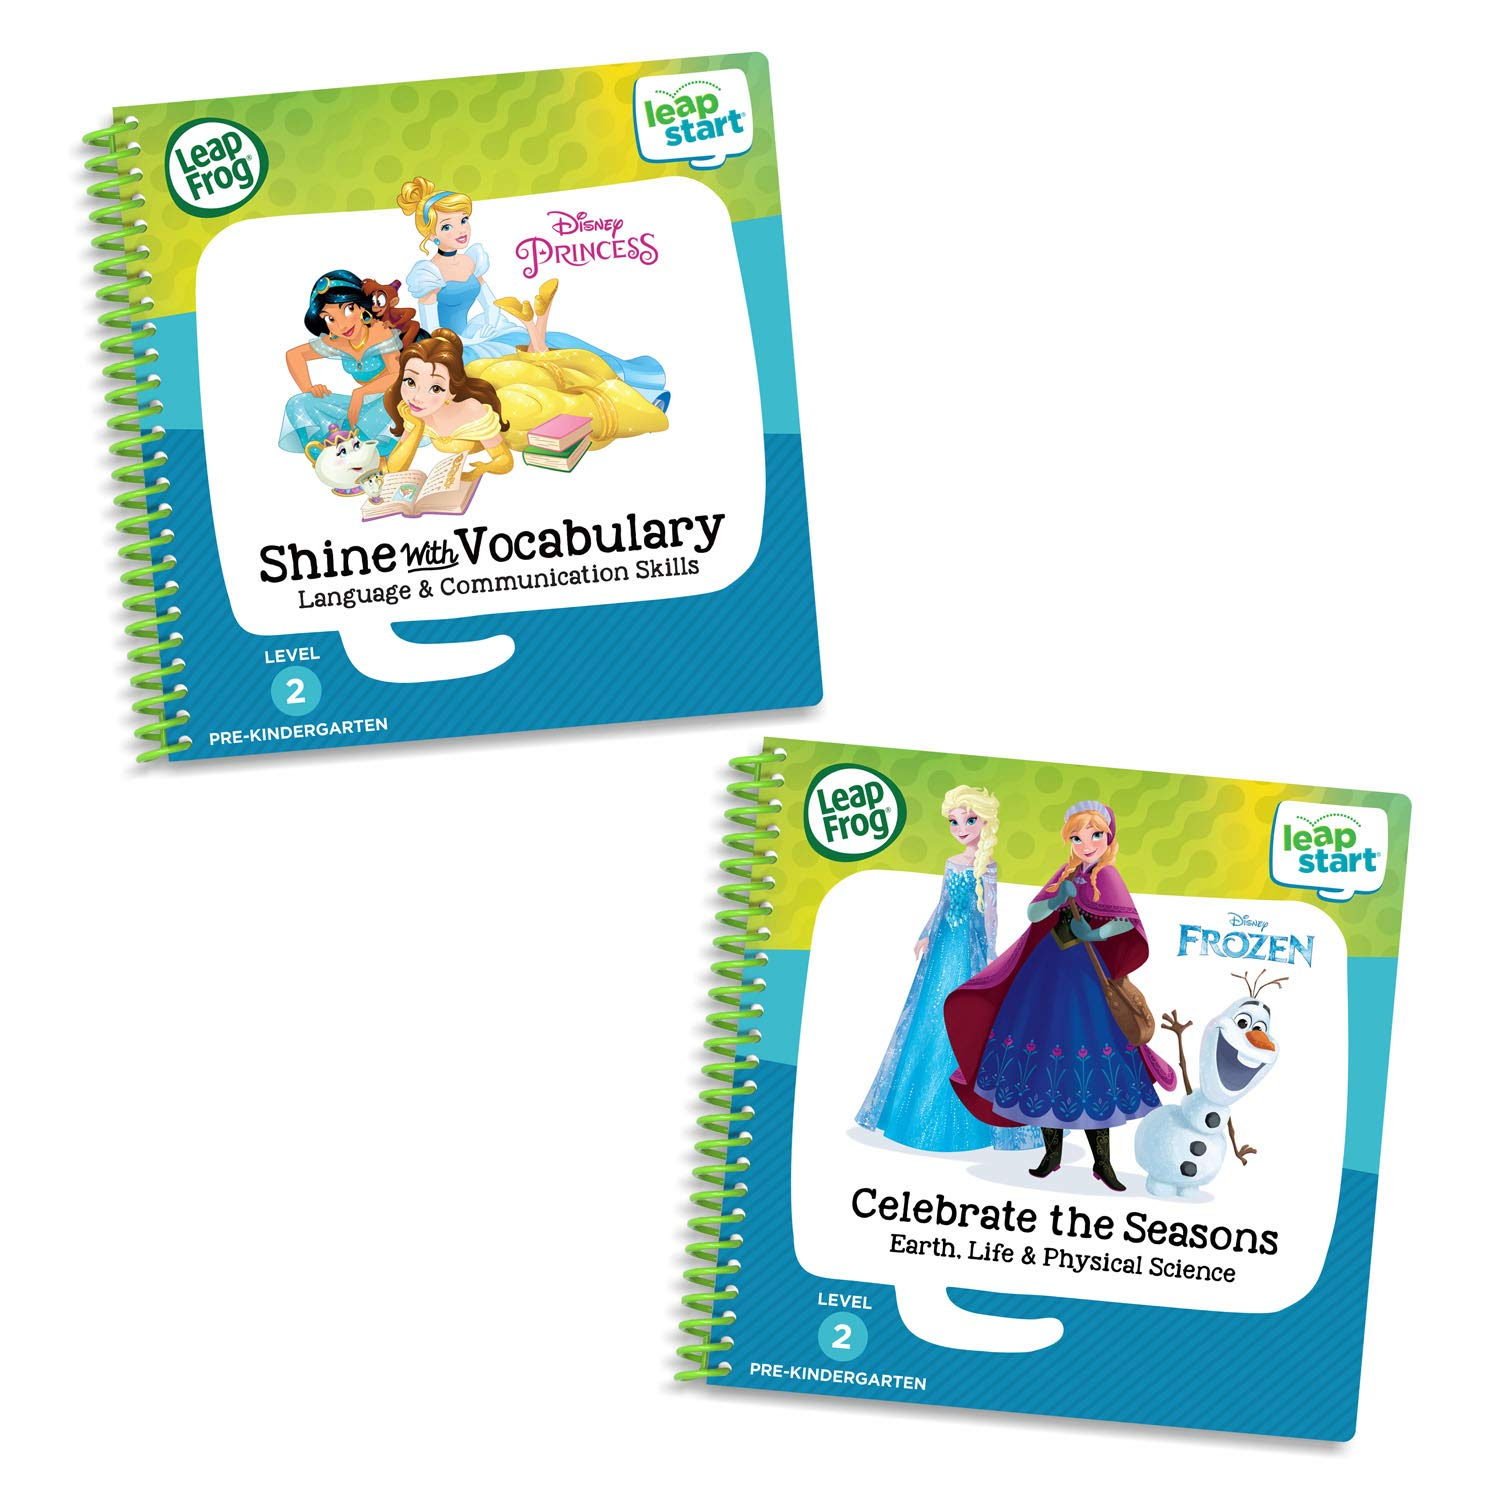 LeapFrog LeapStart 2 Book Combo Pack: Shine with Vocabulary and Celebrate The Seasons by LeapFrog